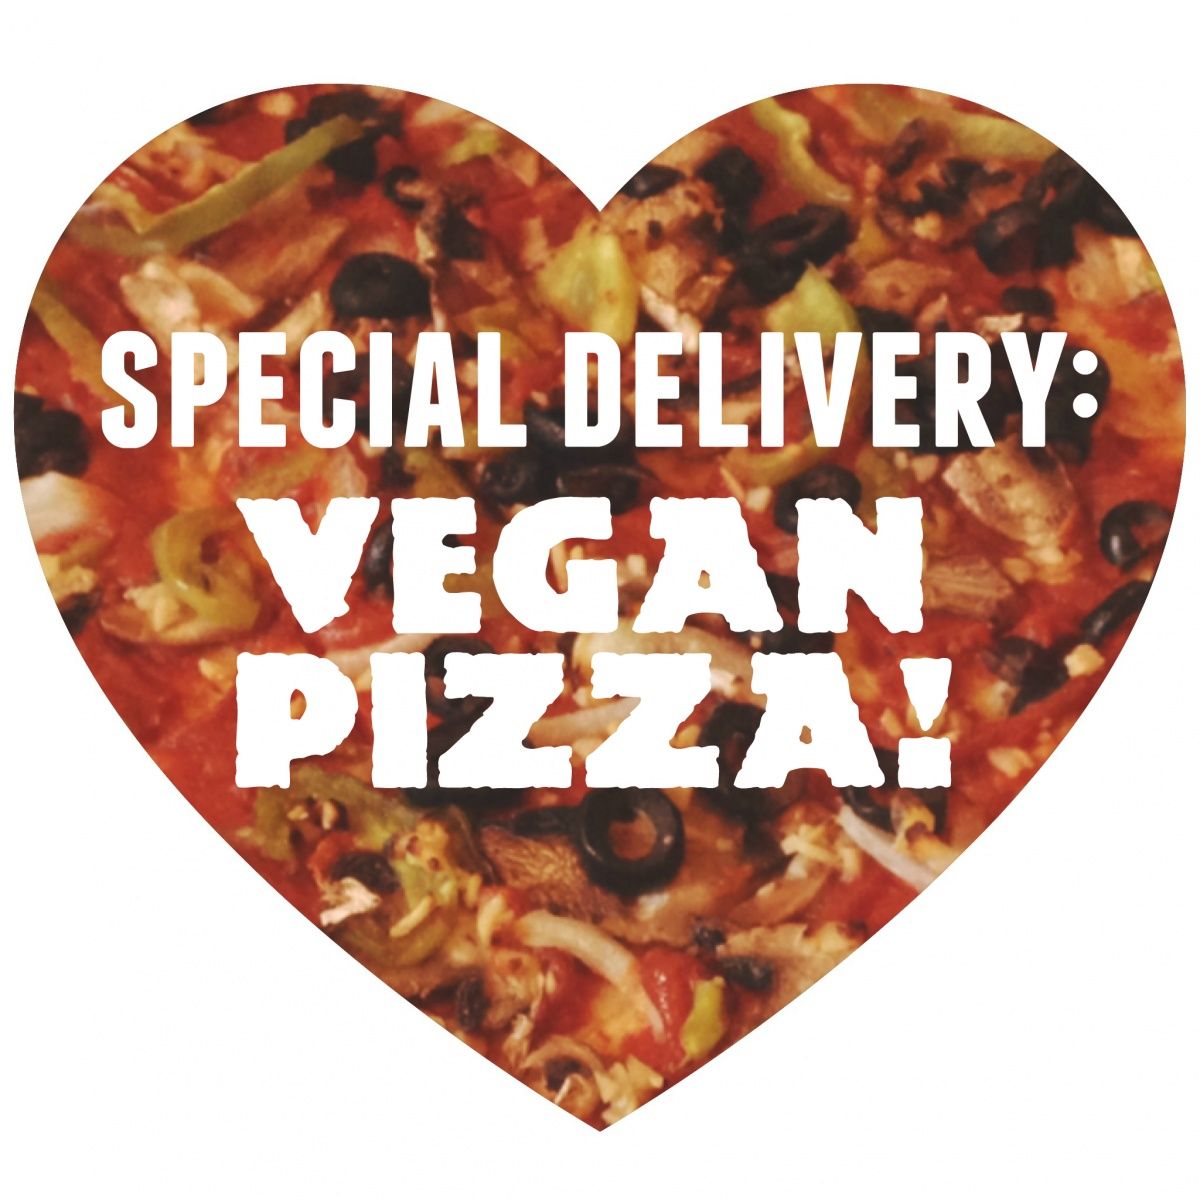 vegan pizza delivery heart